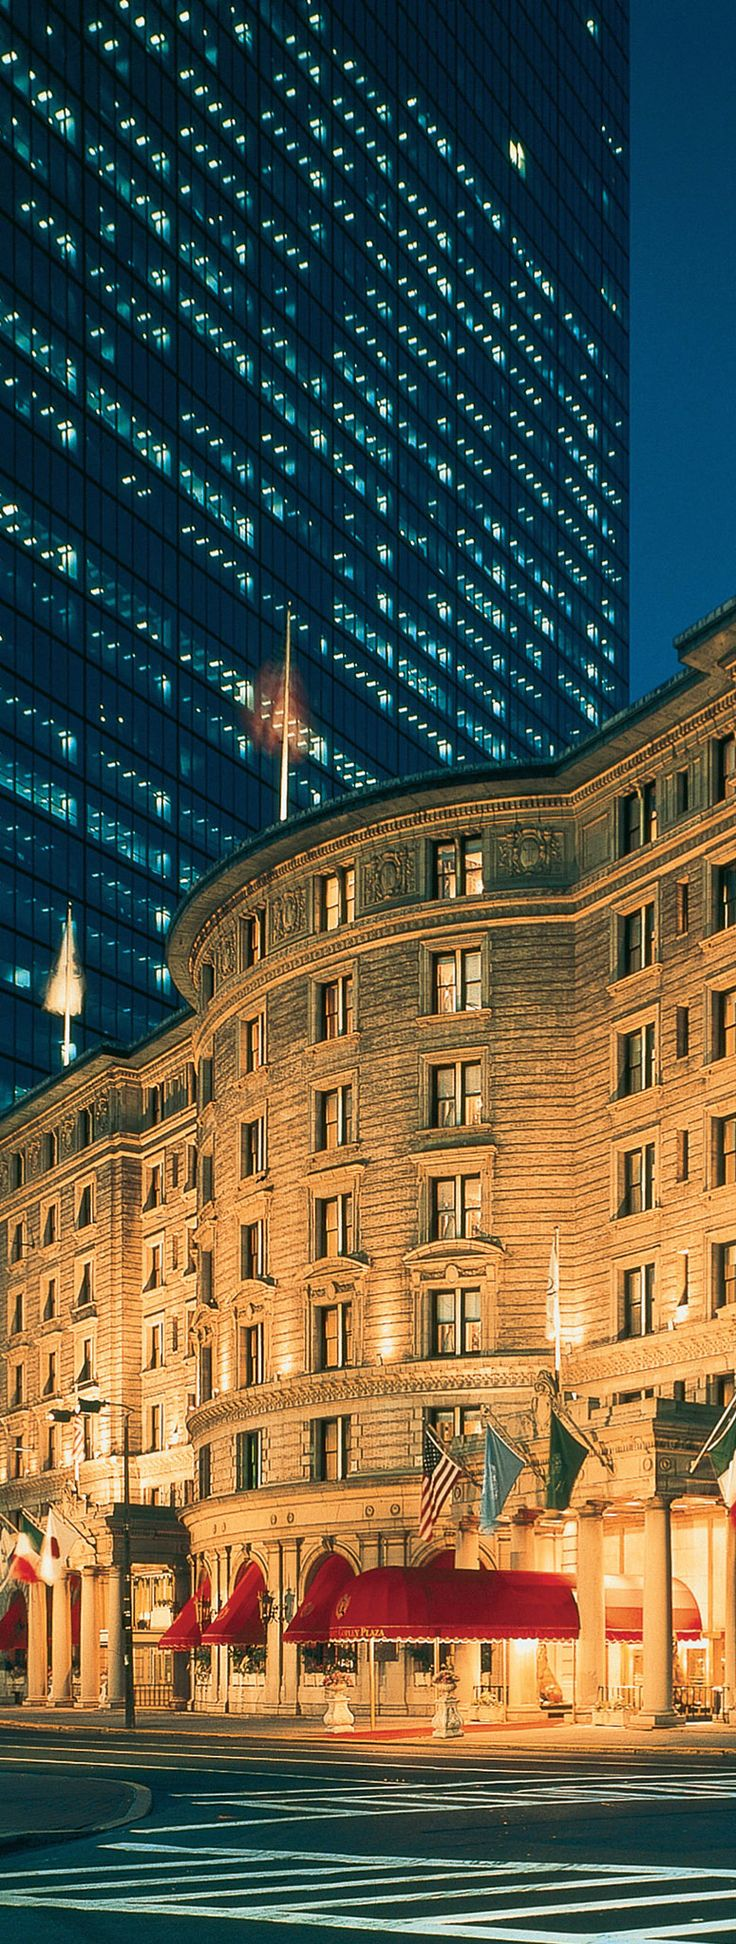 No hotel marries #Boston's heritage and modern style better than the Fairmont Copley Plaza.